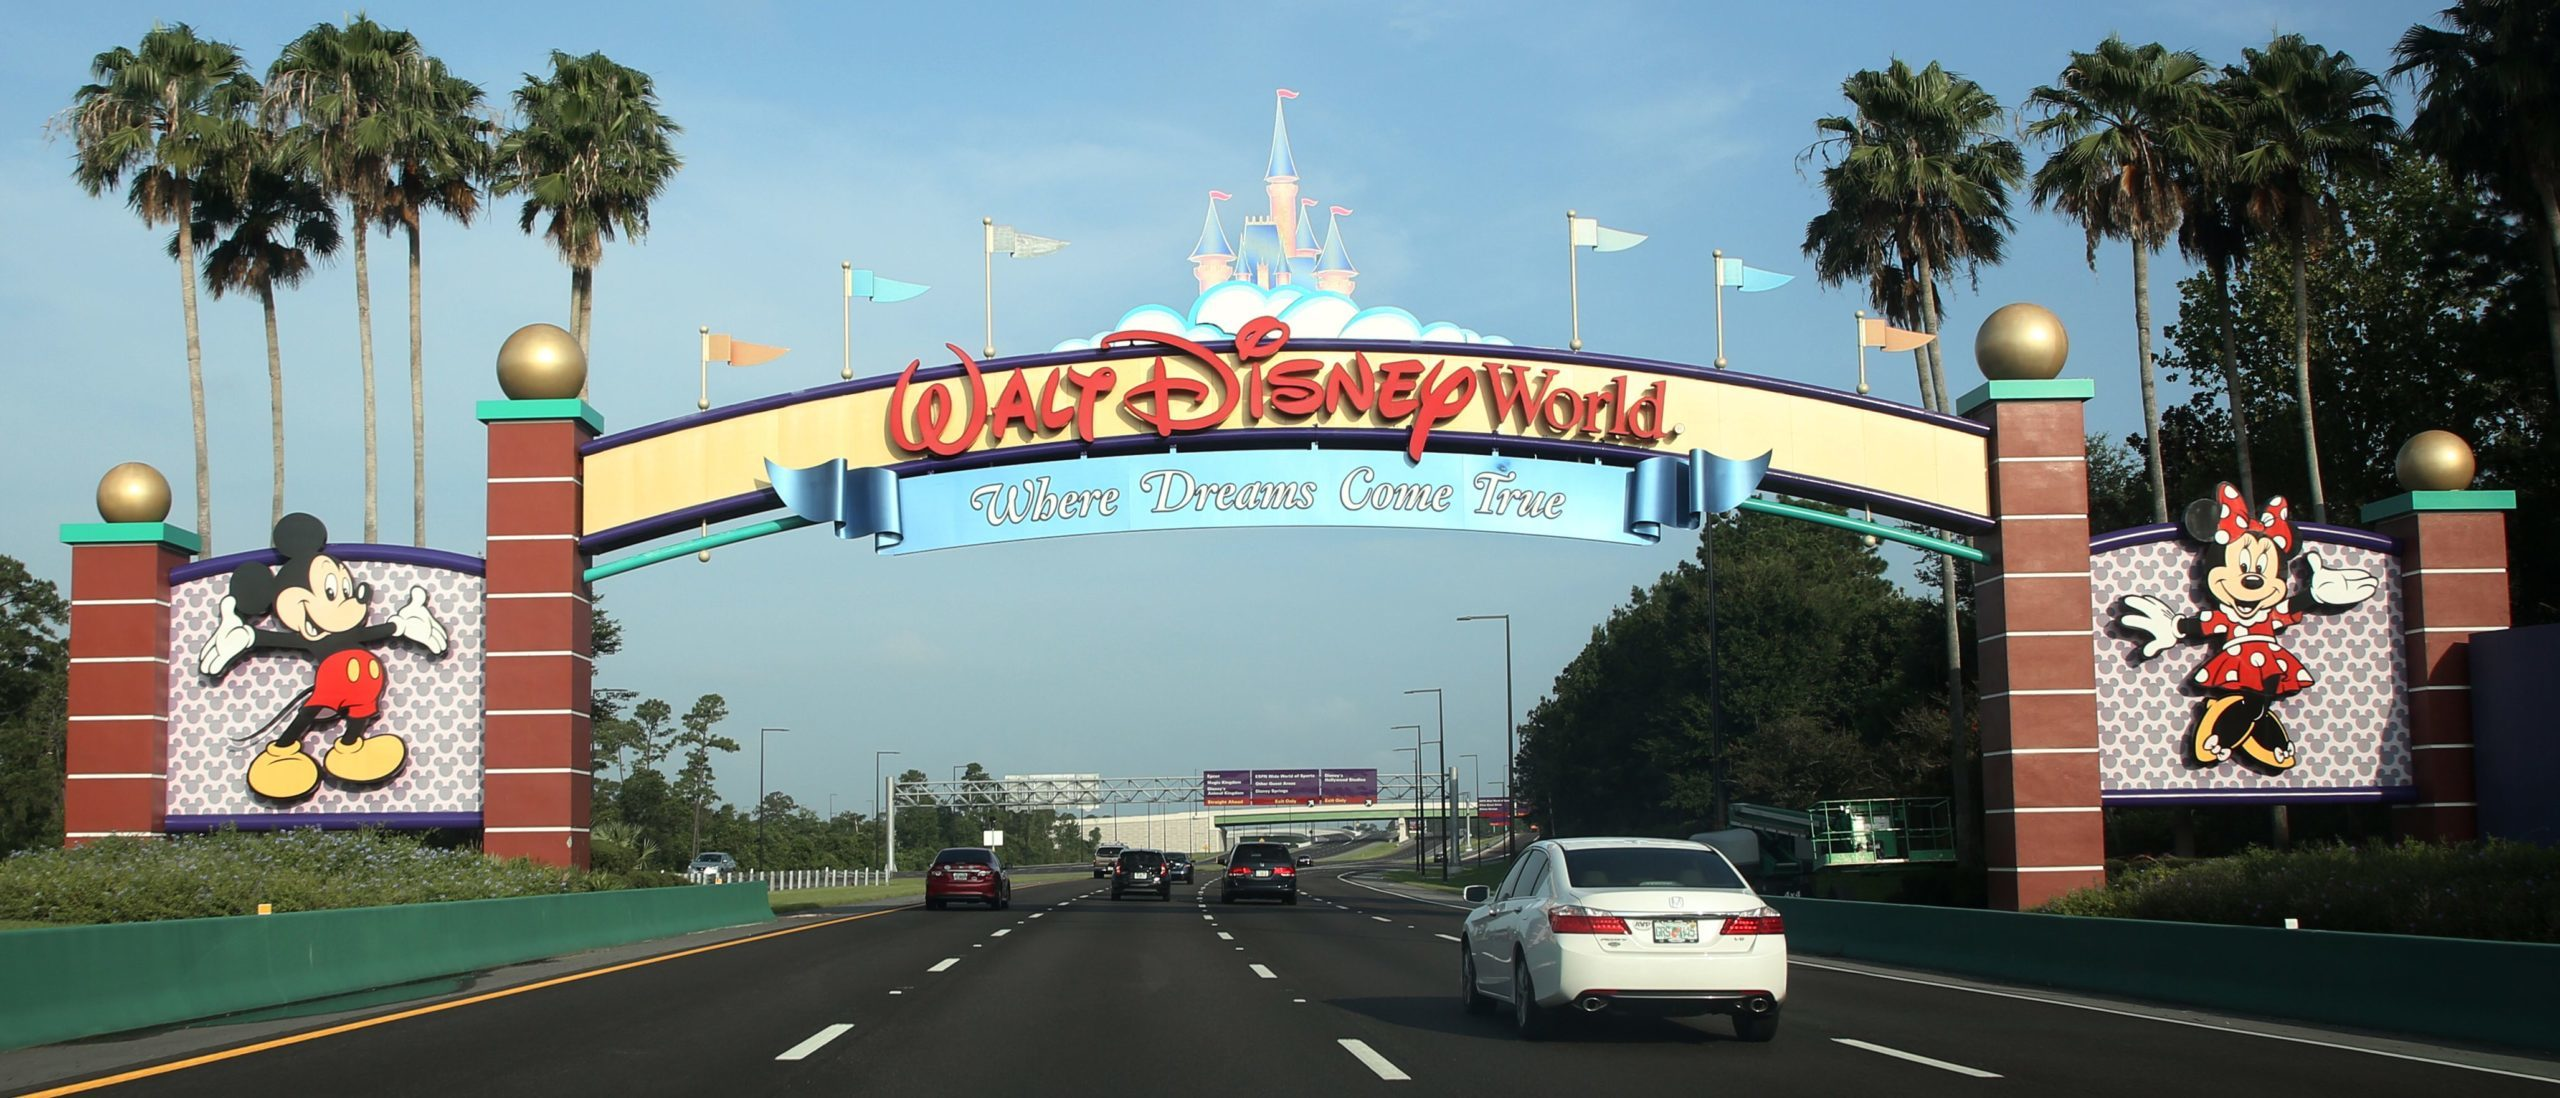 Visitors drive past a sign welcoming them to Walt Disney World on the first day of reopening of the iconic Magic Kingdom. (Photo by GREGG NEWTON/Gregg Newton/AFP via Getty Images)